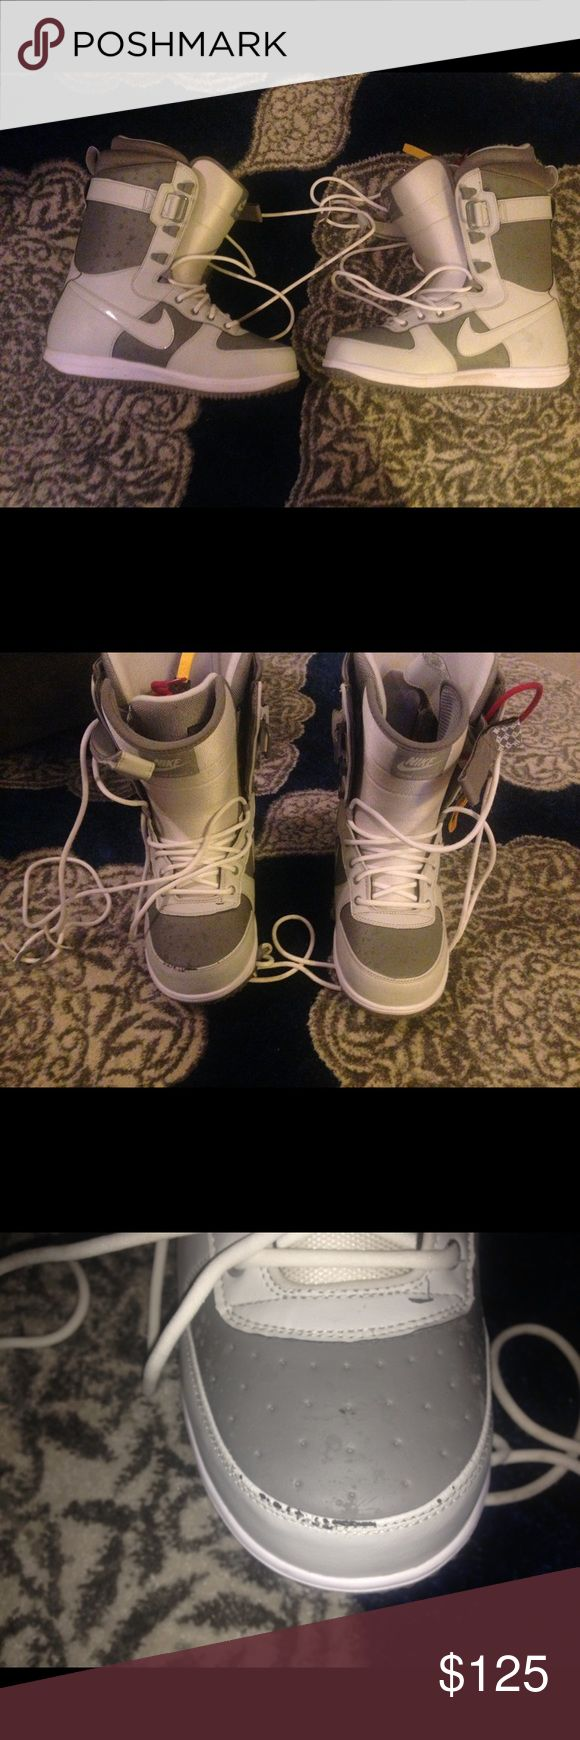 Nike men's snowboard boots Size 10.5. Worn once. Excellent condition. Paid over $250 for them. One toe is scuffed. Nike Shoes Winter & Rain Boots